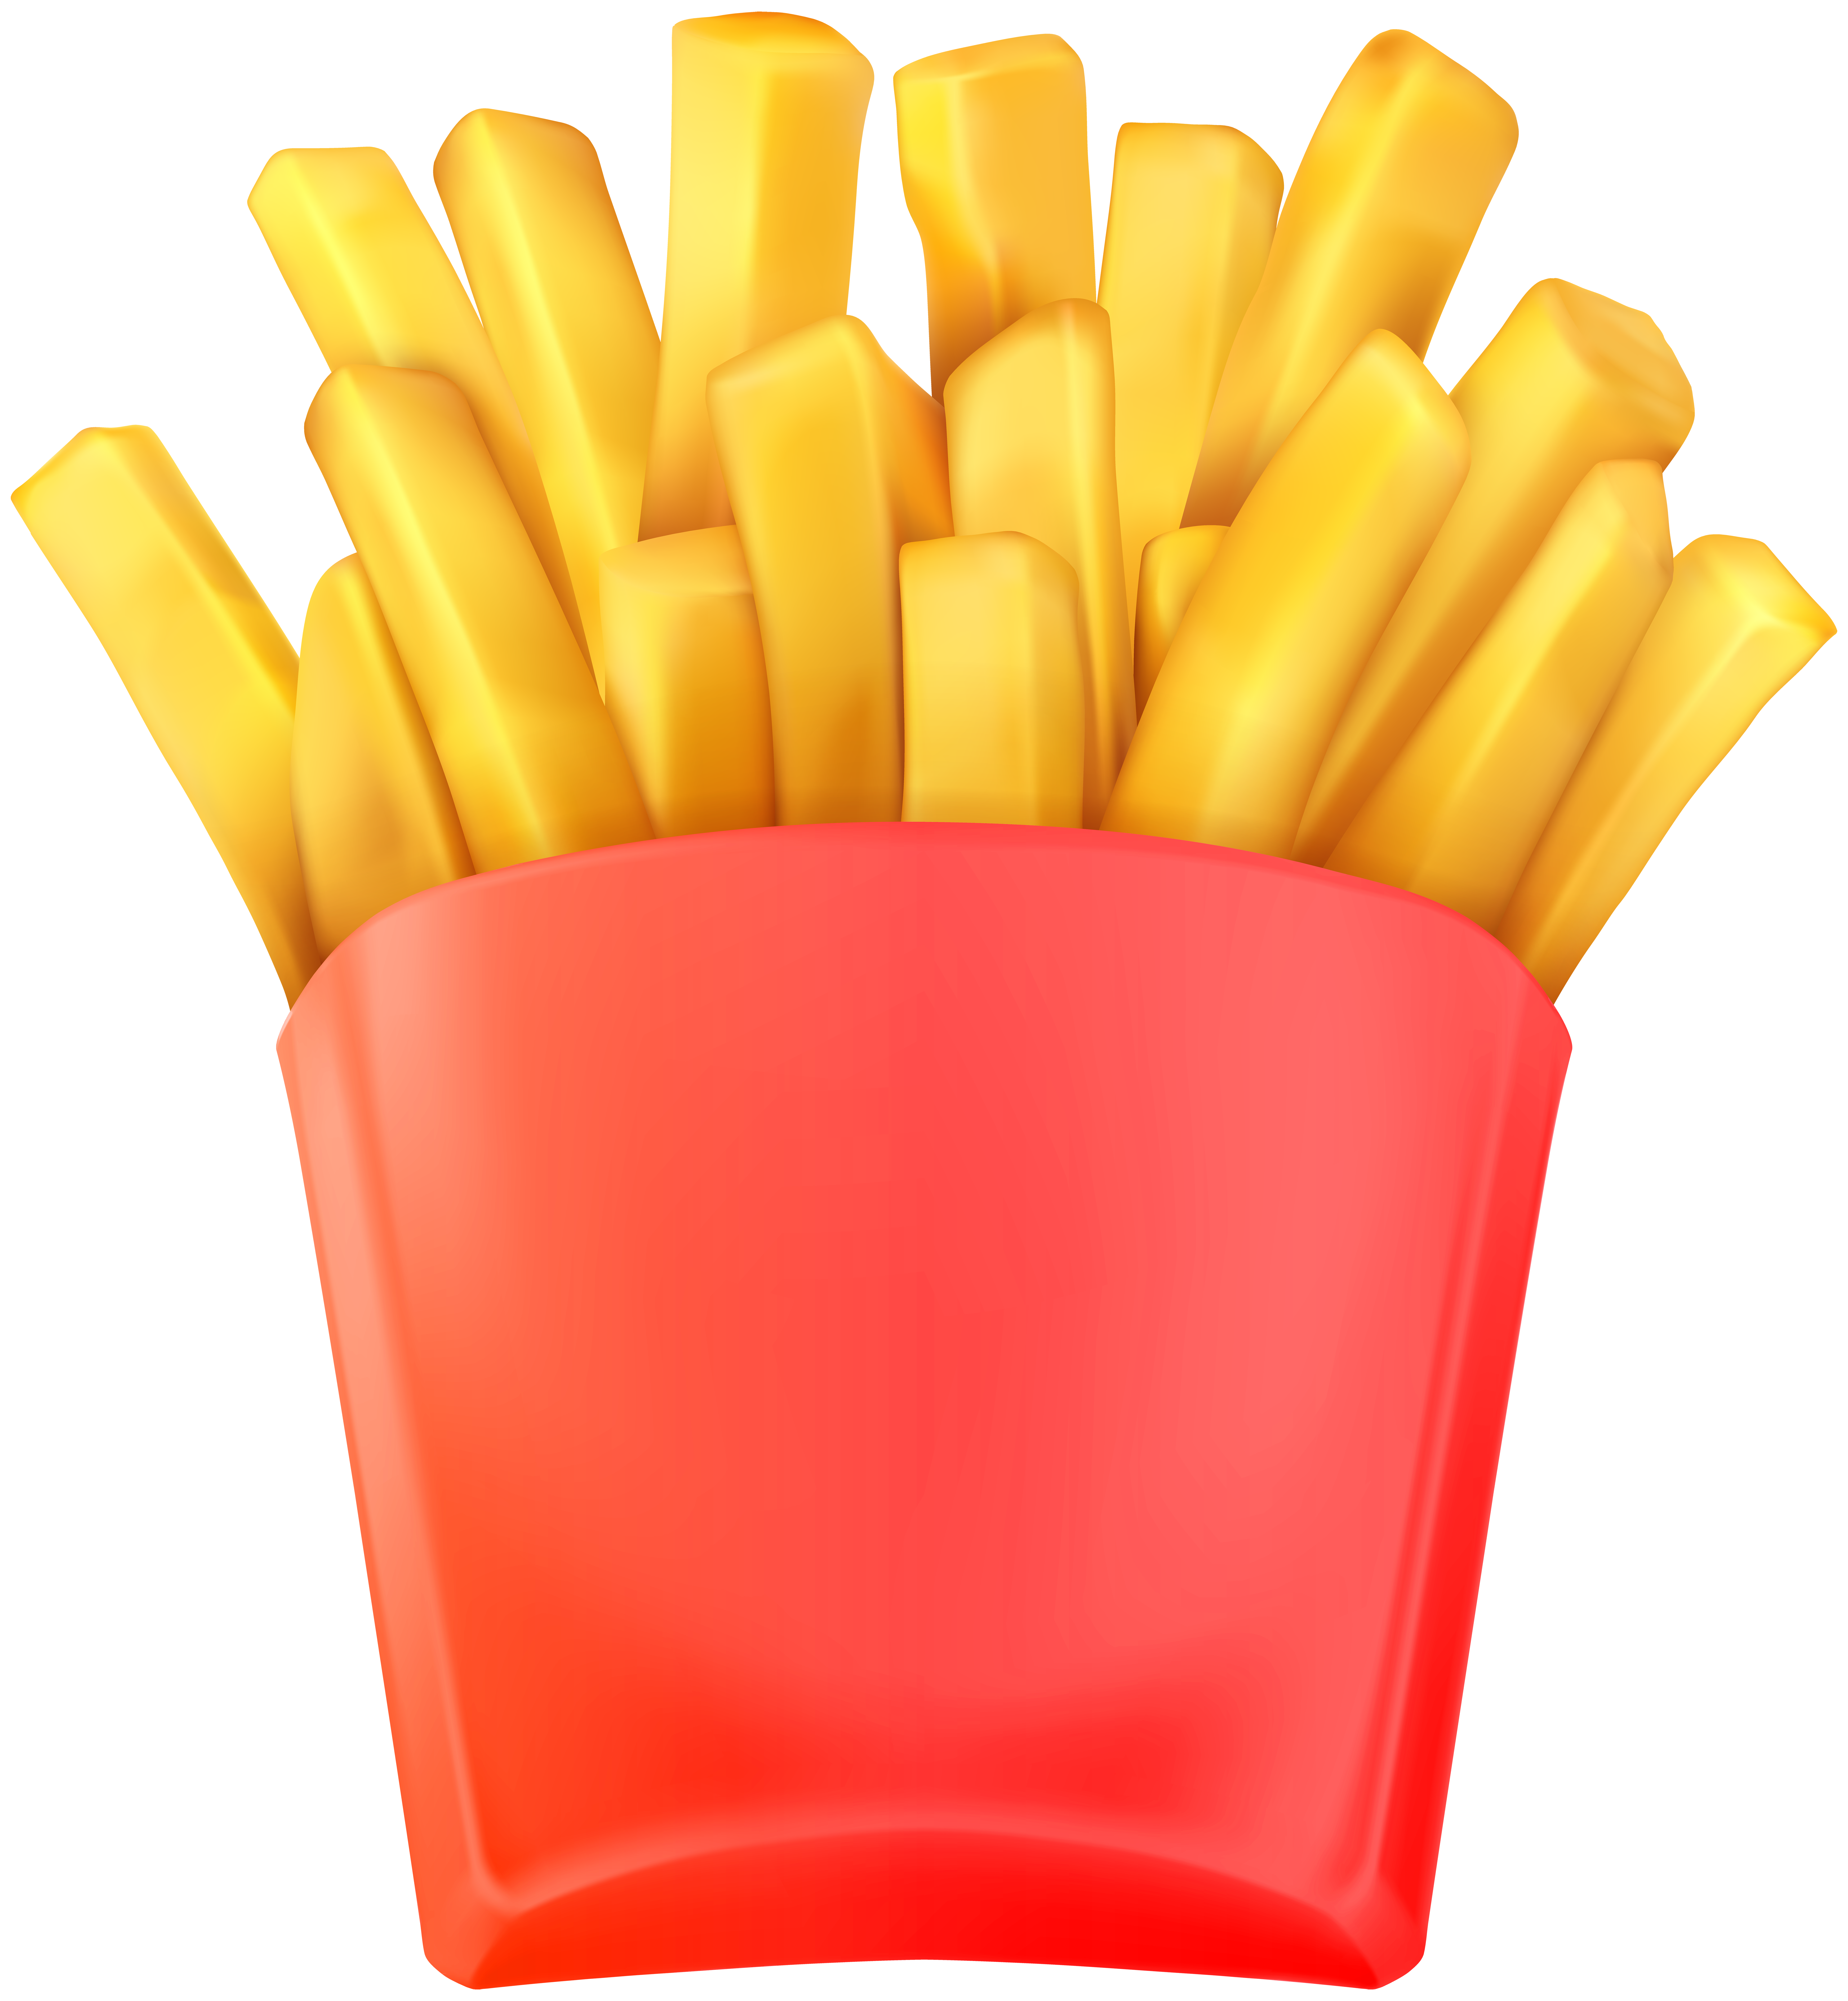 French fries clipart png. Transparent clip art image